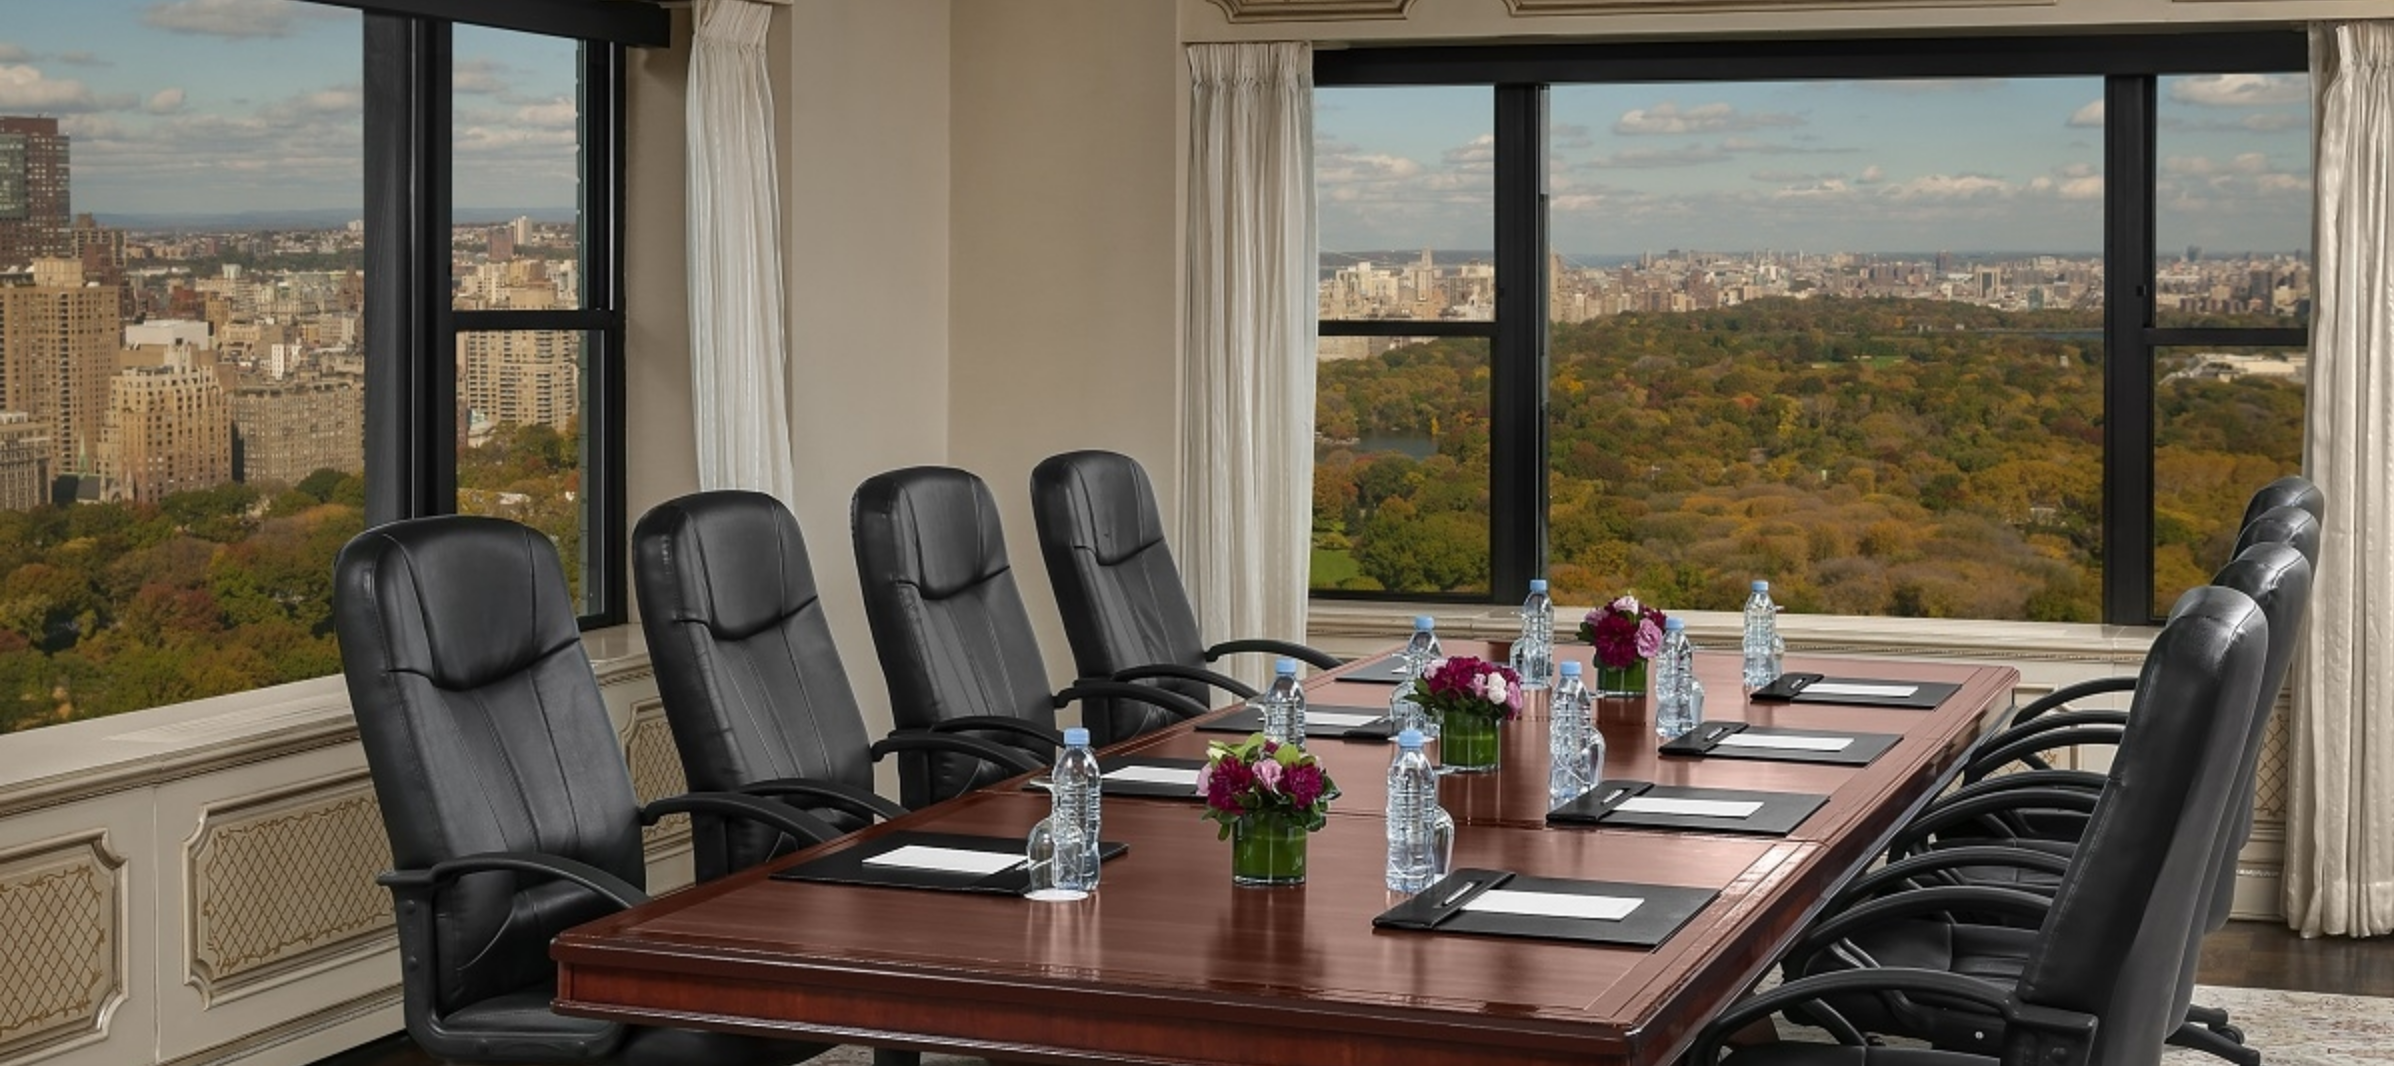 Photo #4 Park Lane Suite Boardroom at Park Lane Hotel New York